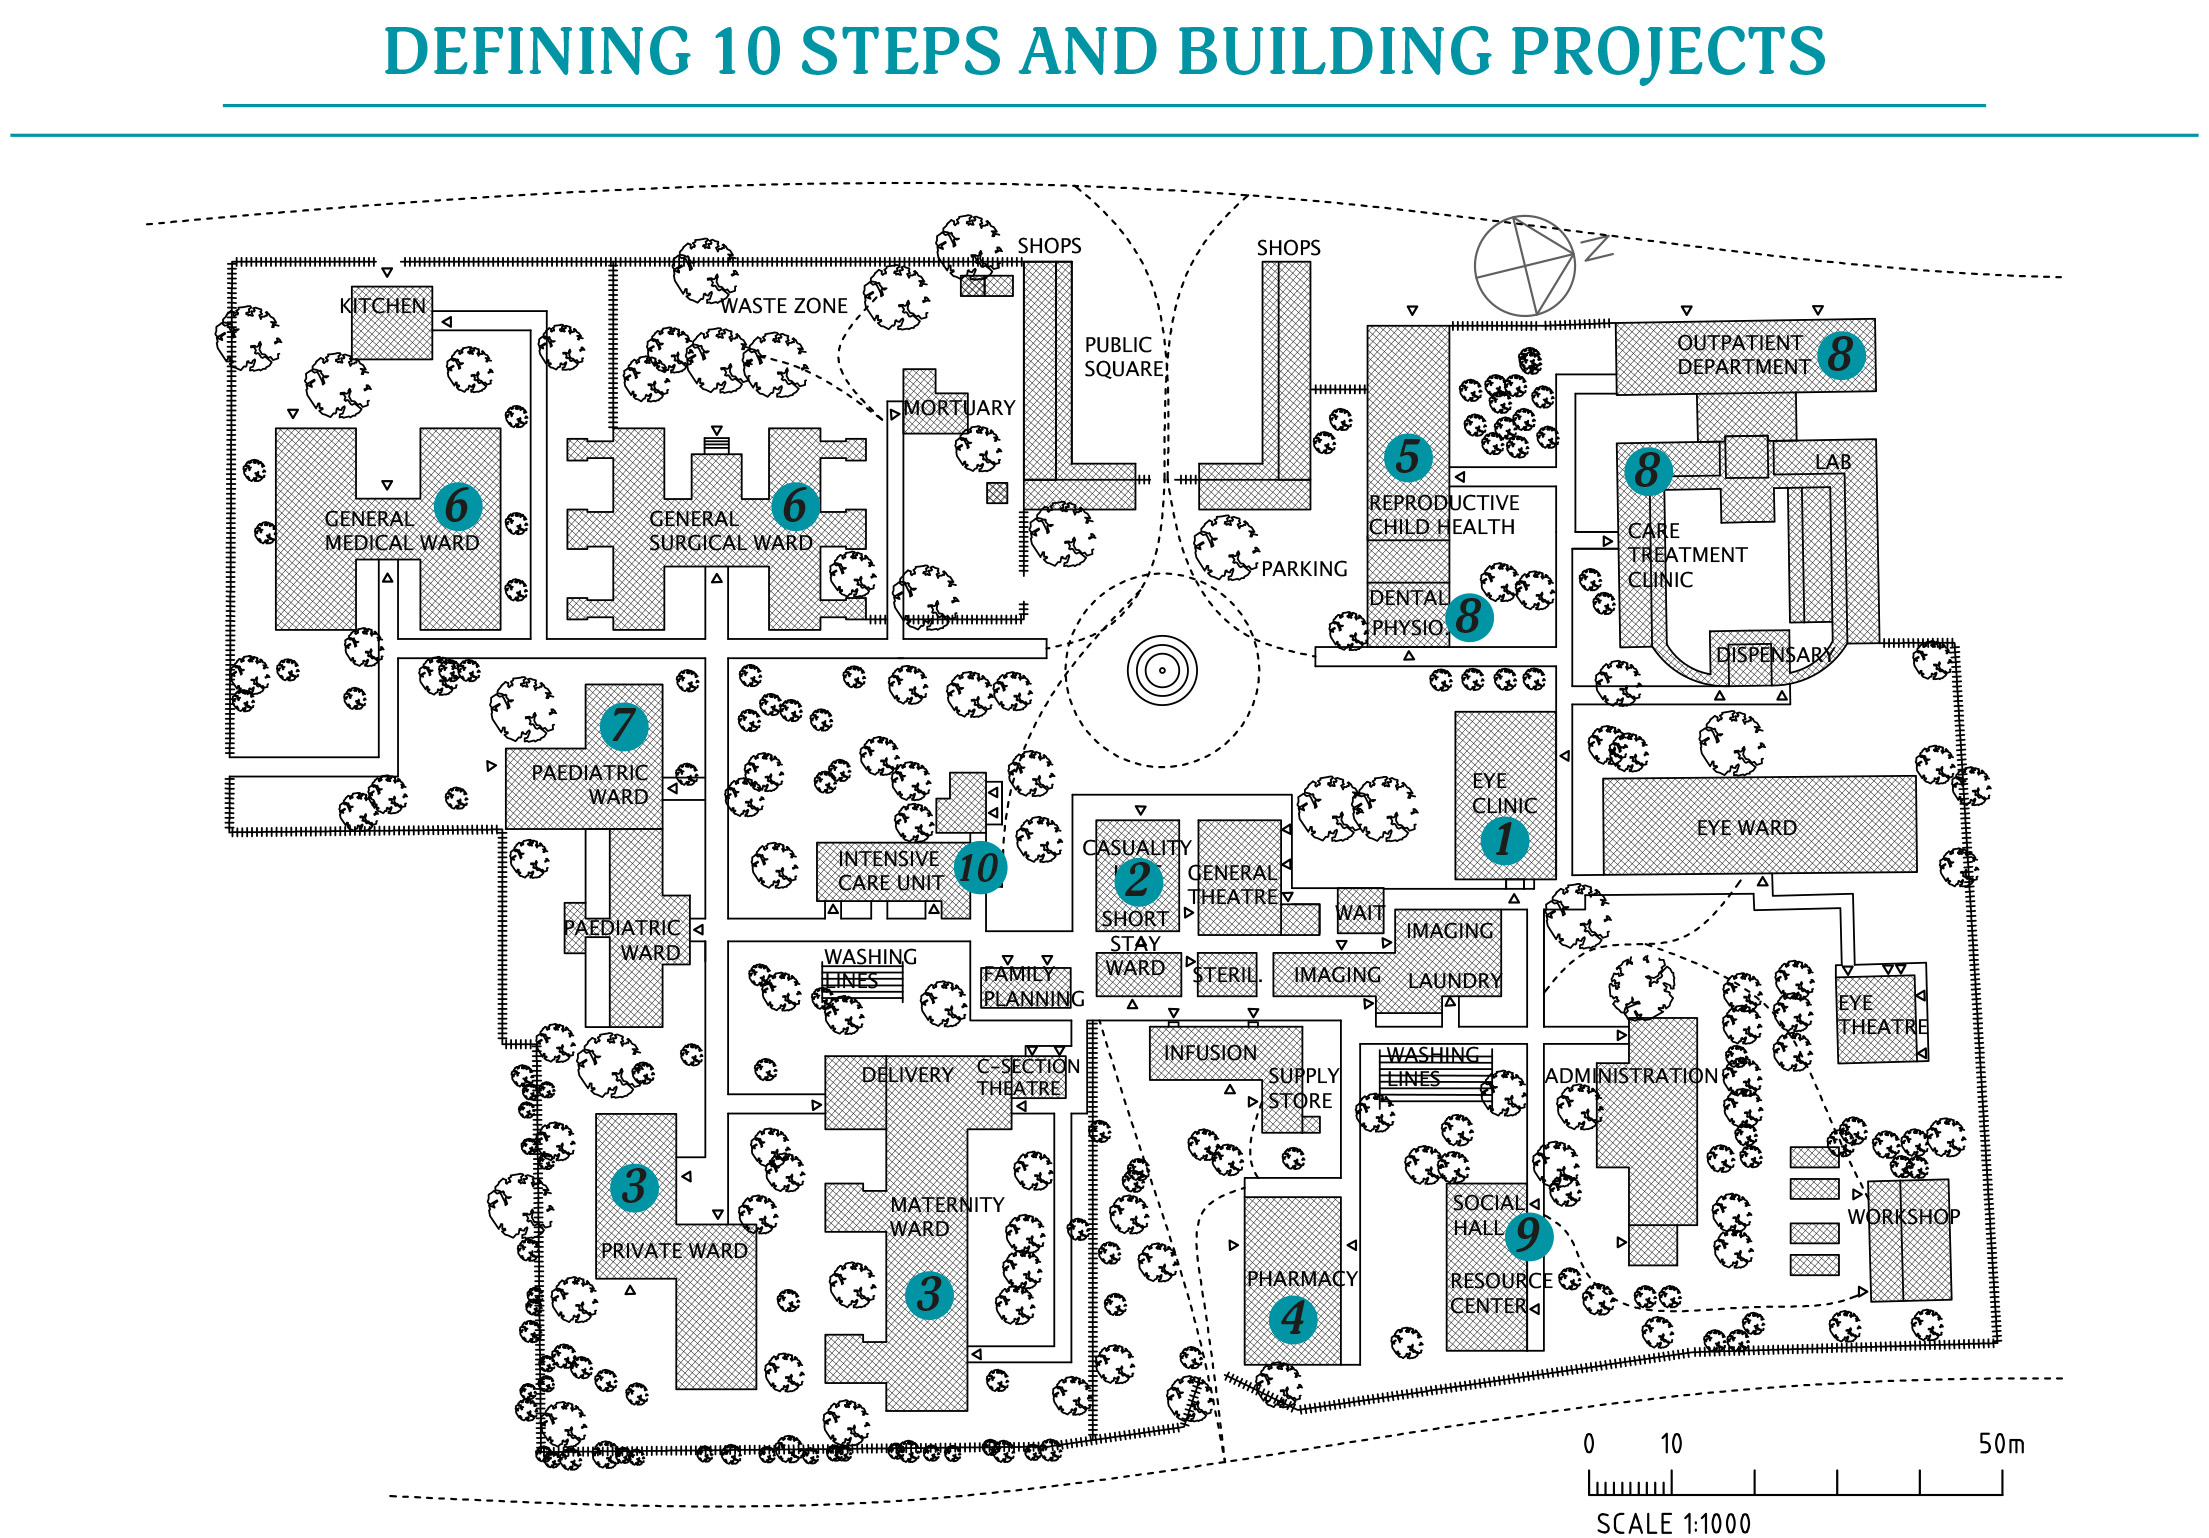 An overview of the hospital site and the identified construction projects and priority order in the masterplan